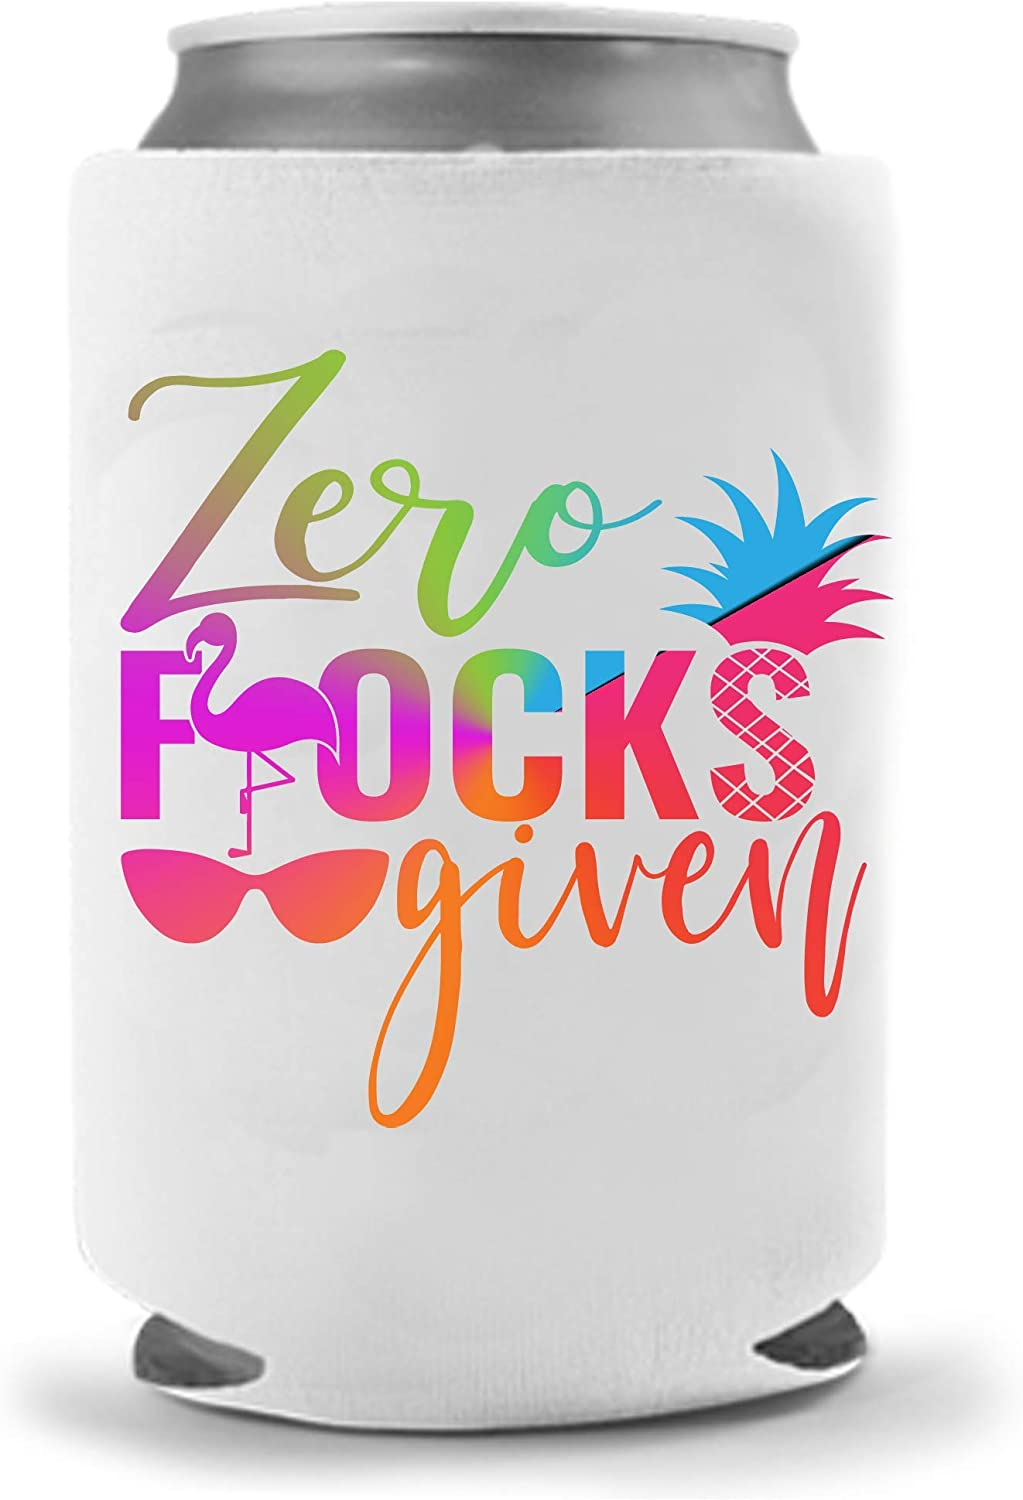 Flamingo Zero Flocks Given Beer Coolies | Pink Rainbow | Funny Gag Party Gift Beer | Funny Joke Drink Can Cooler | Beer Beverage Holder | Beer Gifts | Quality Neoprene Insulated Coolie (Rainbow)